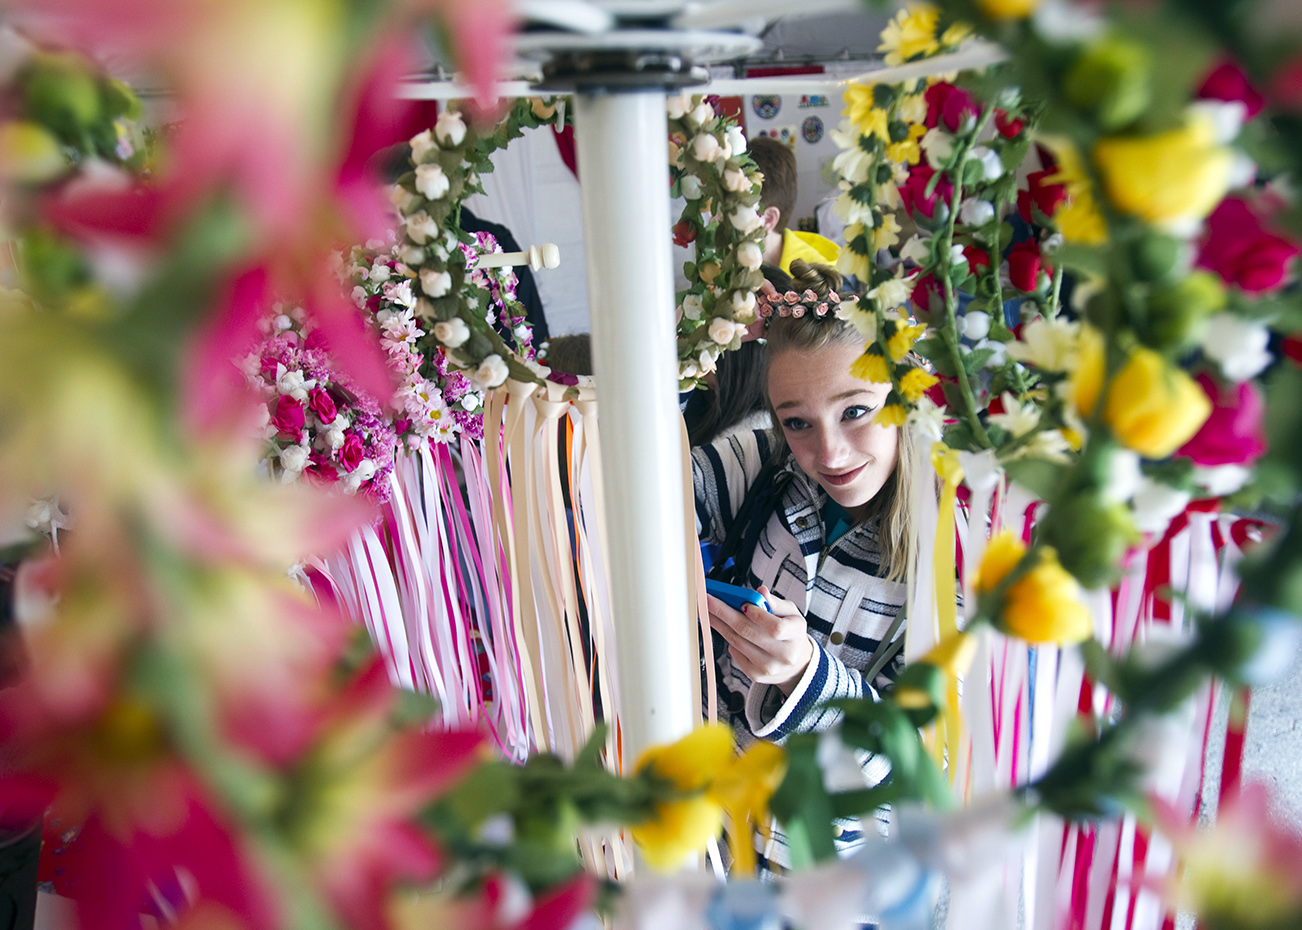 Abby Heinzen tries on traditional Polish flower wreaths on Saturday, June 13, 2015 at Polish Fest.  The wreaths are made from fake flowers, wire, and ribbon.